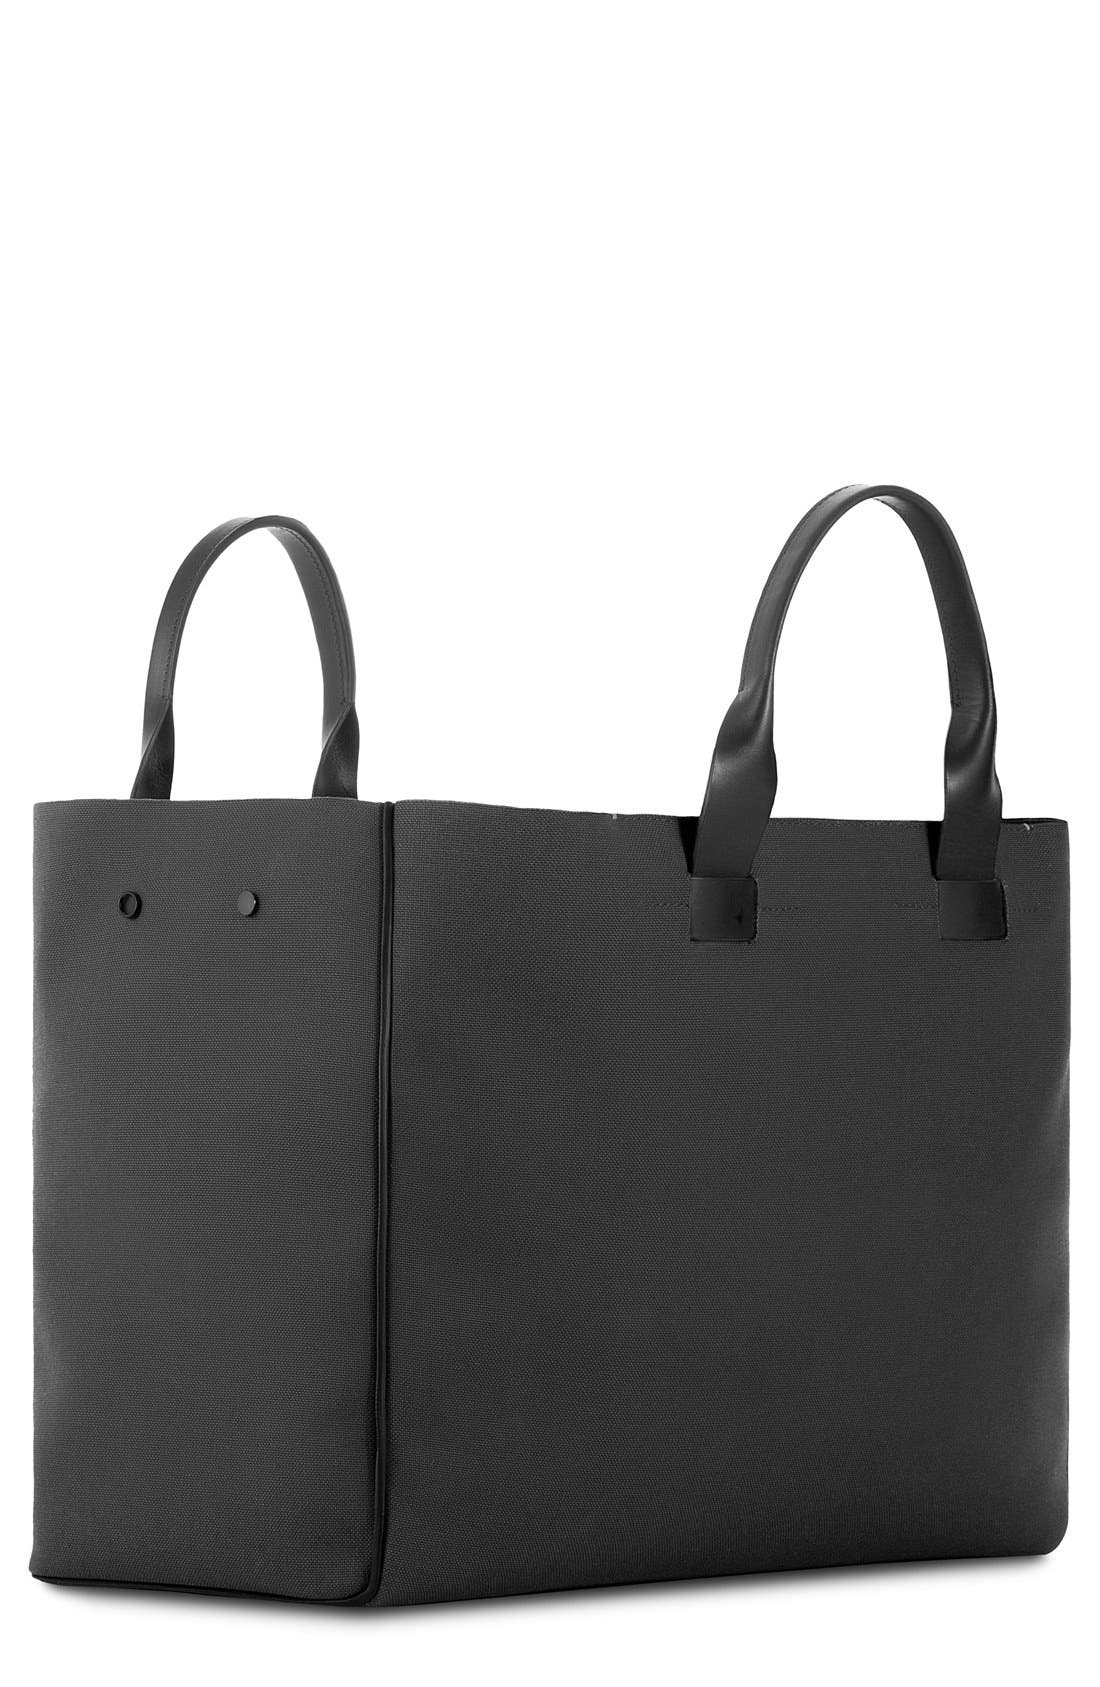 Troubadour Nylon & Leather Tote Bag